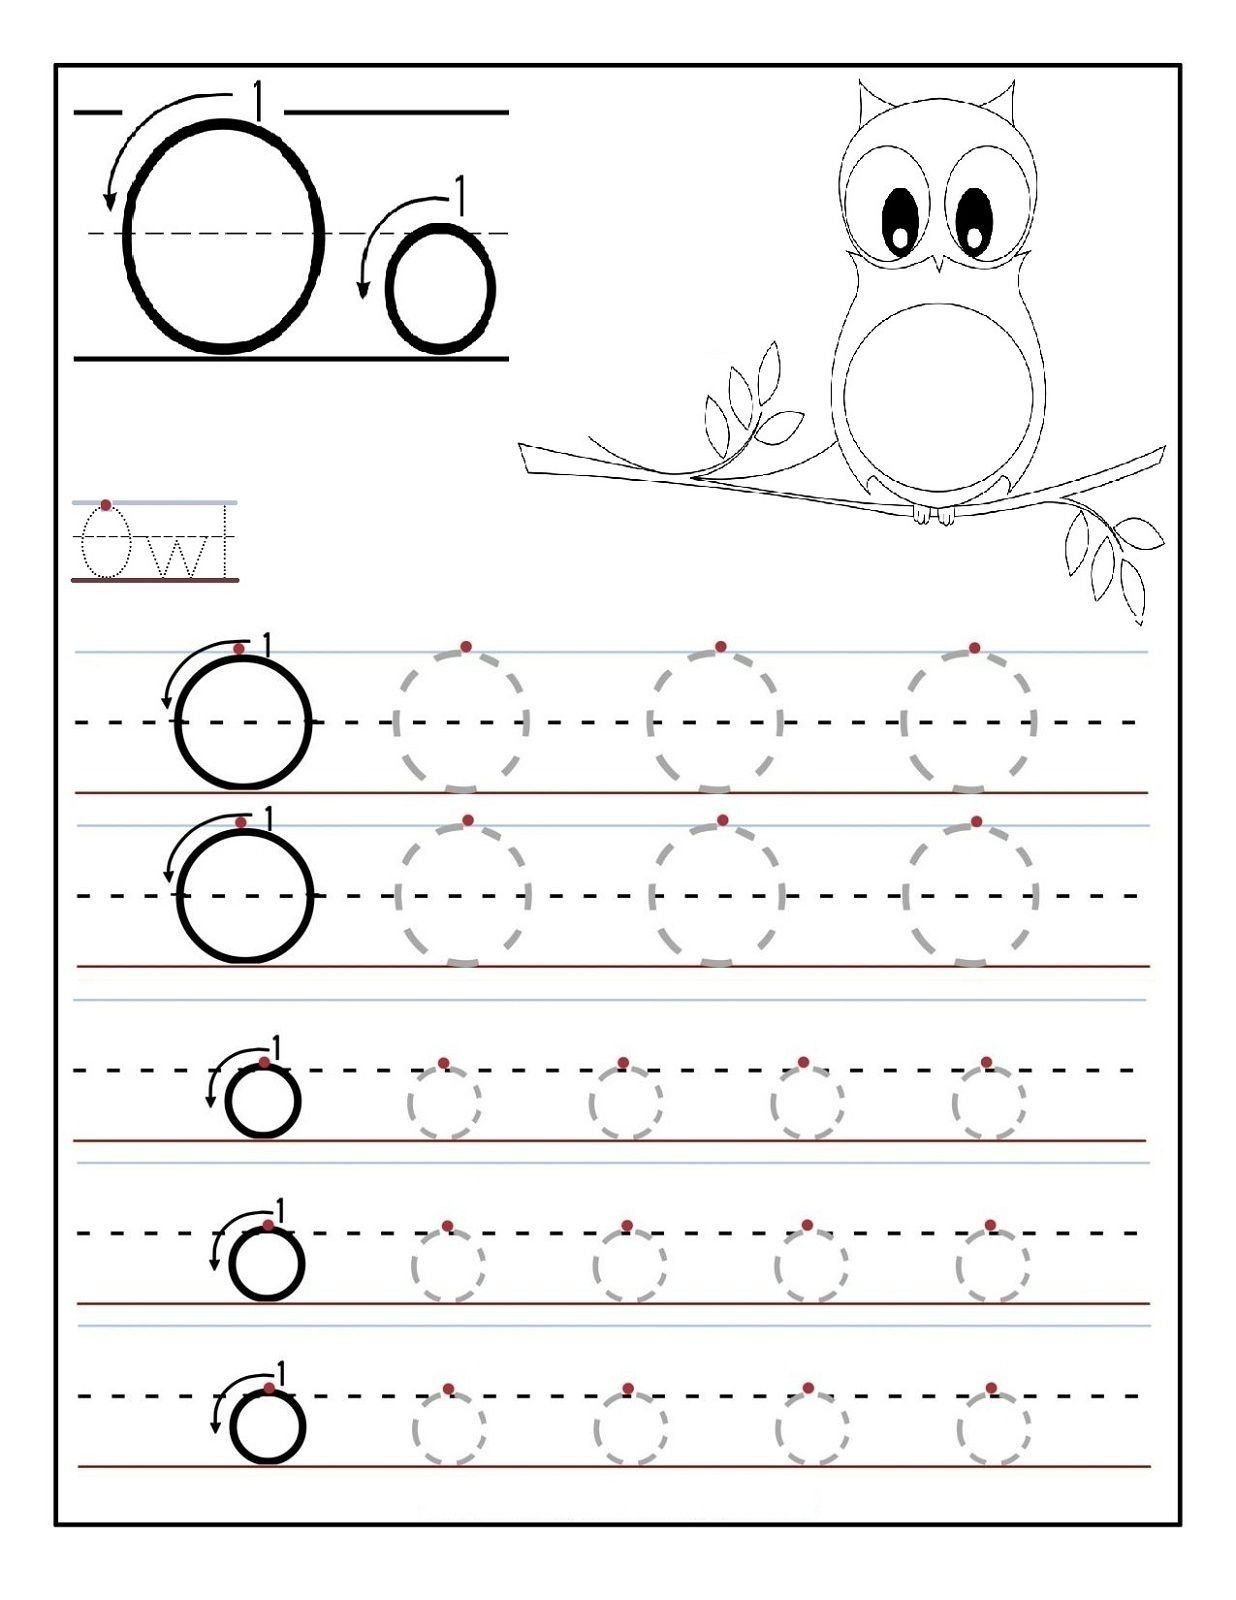 Science Worksheets Special Education  Briefencounters With Regard To Science Worksheets Special Education